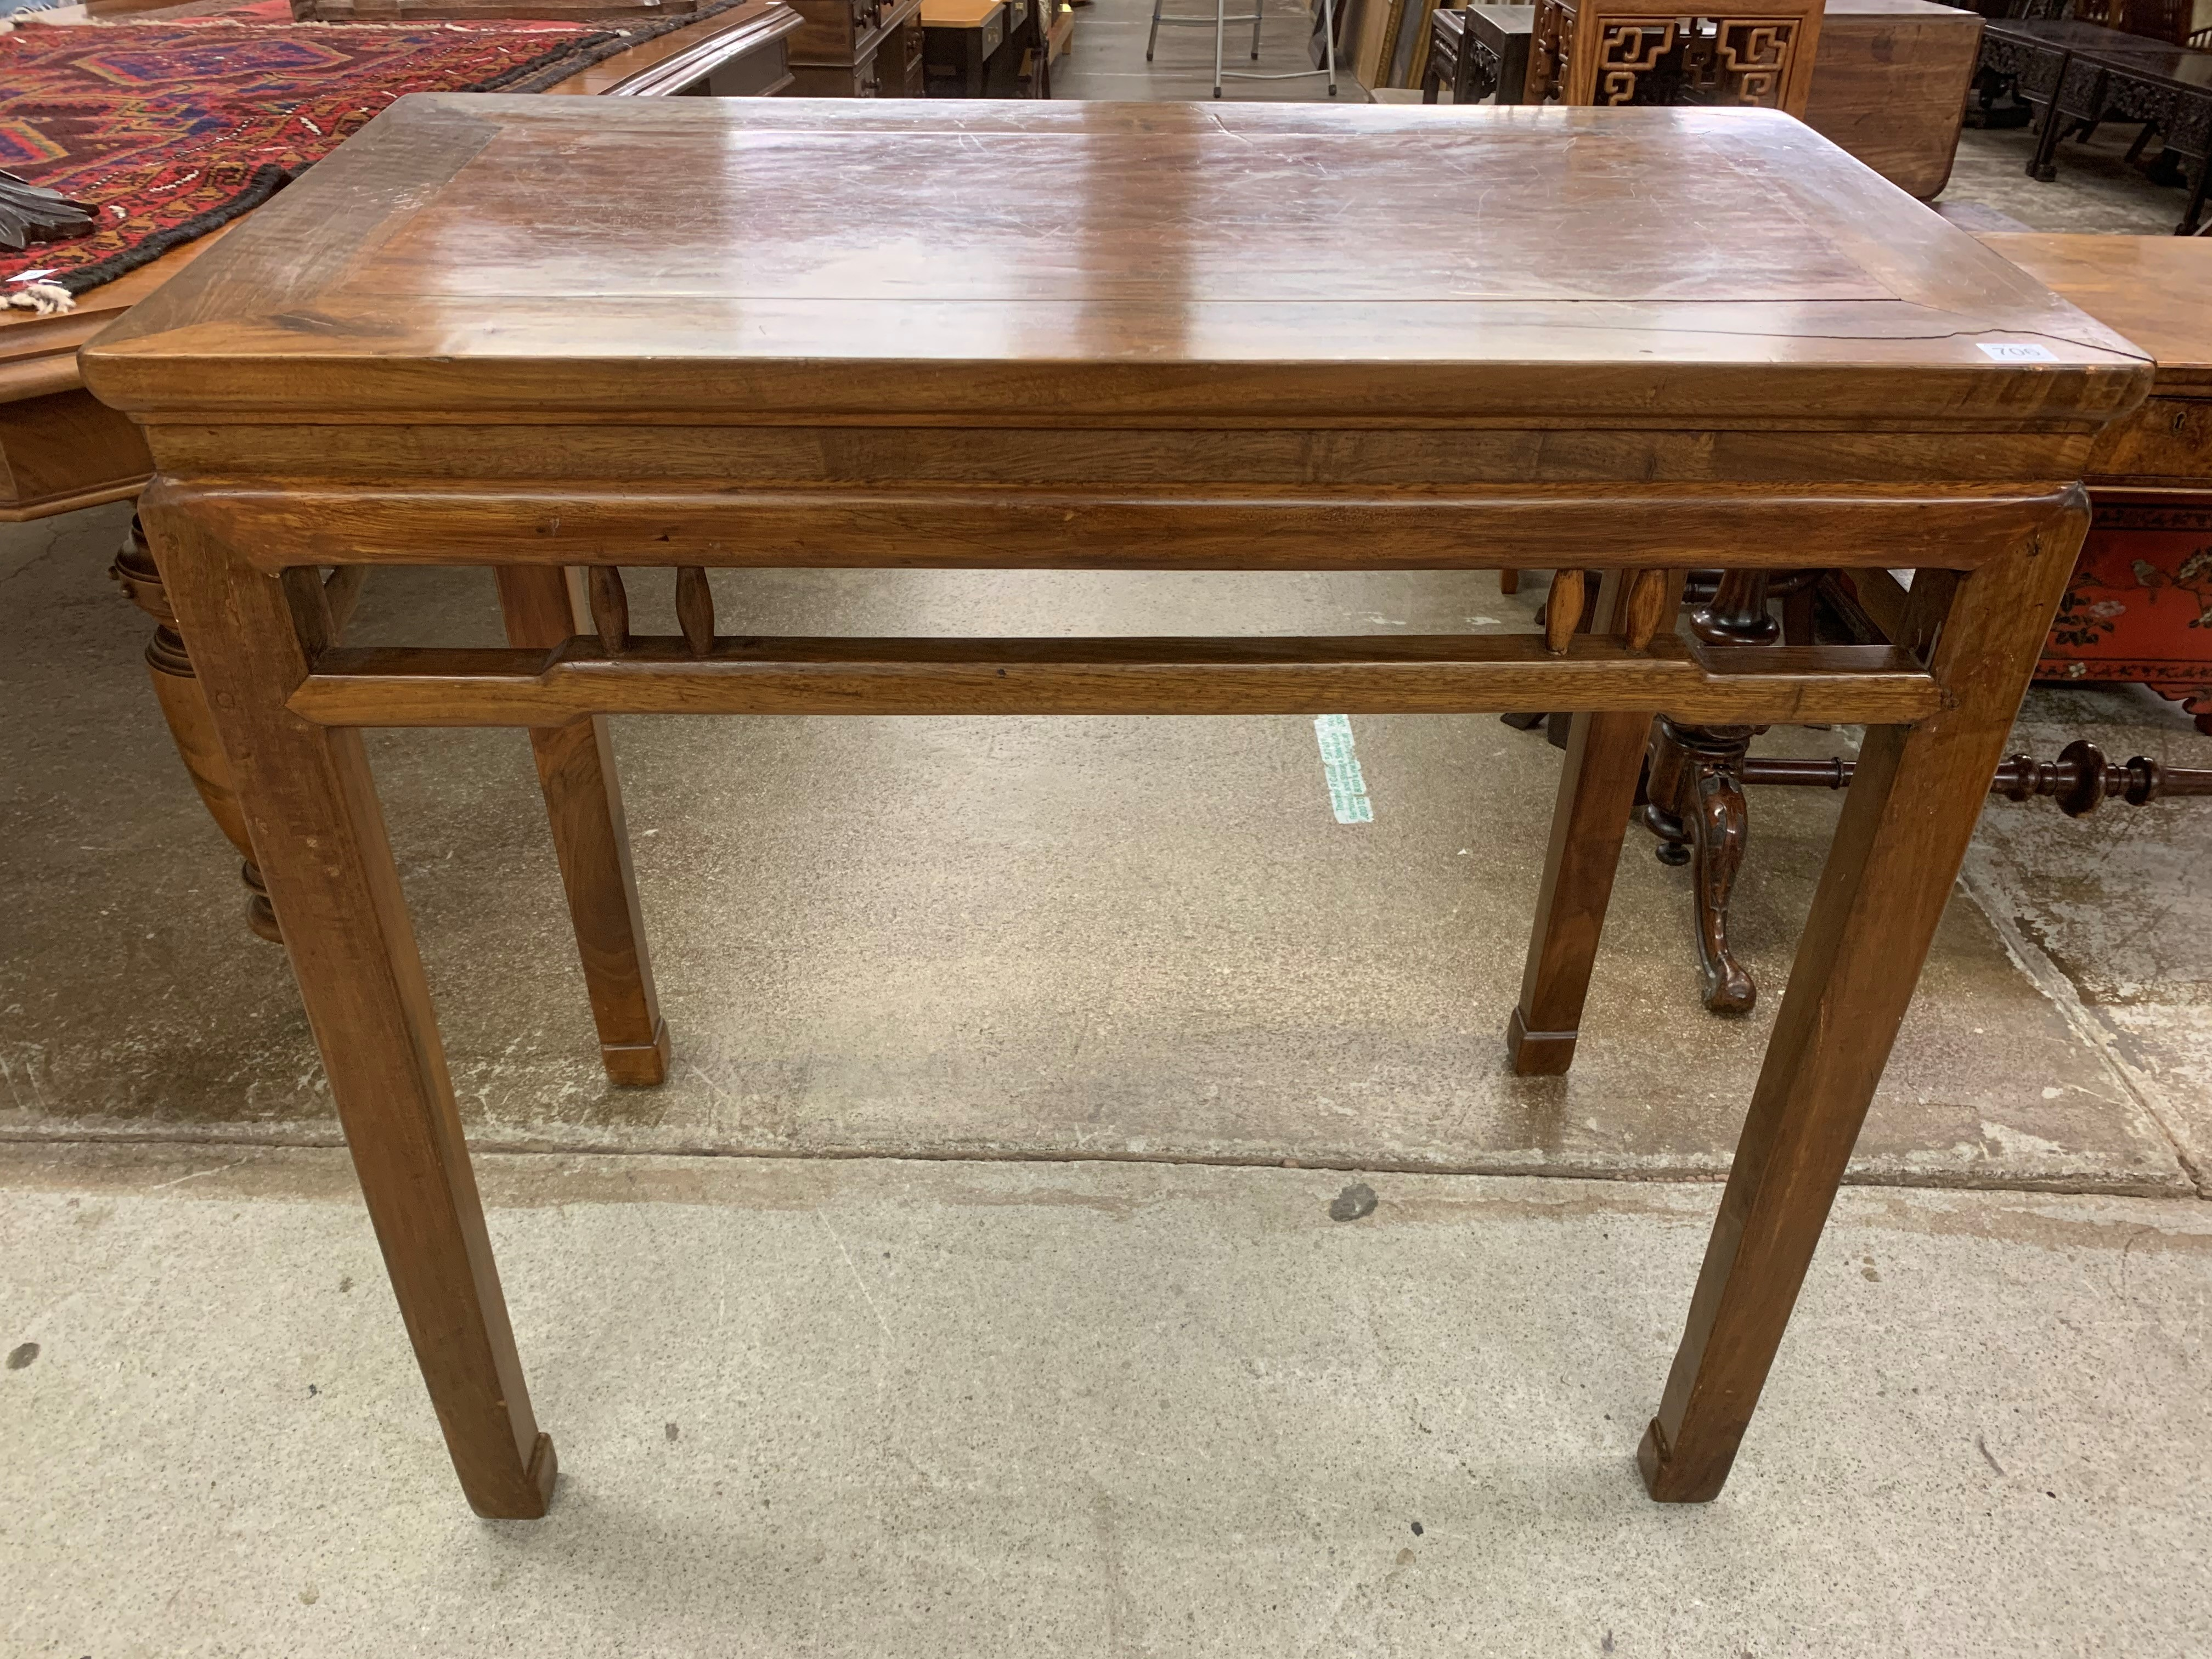 Chinese hardwood altar table, 95.5cm long, 51cm wide, 89cm high. - Image 2 of 6